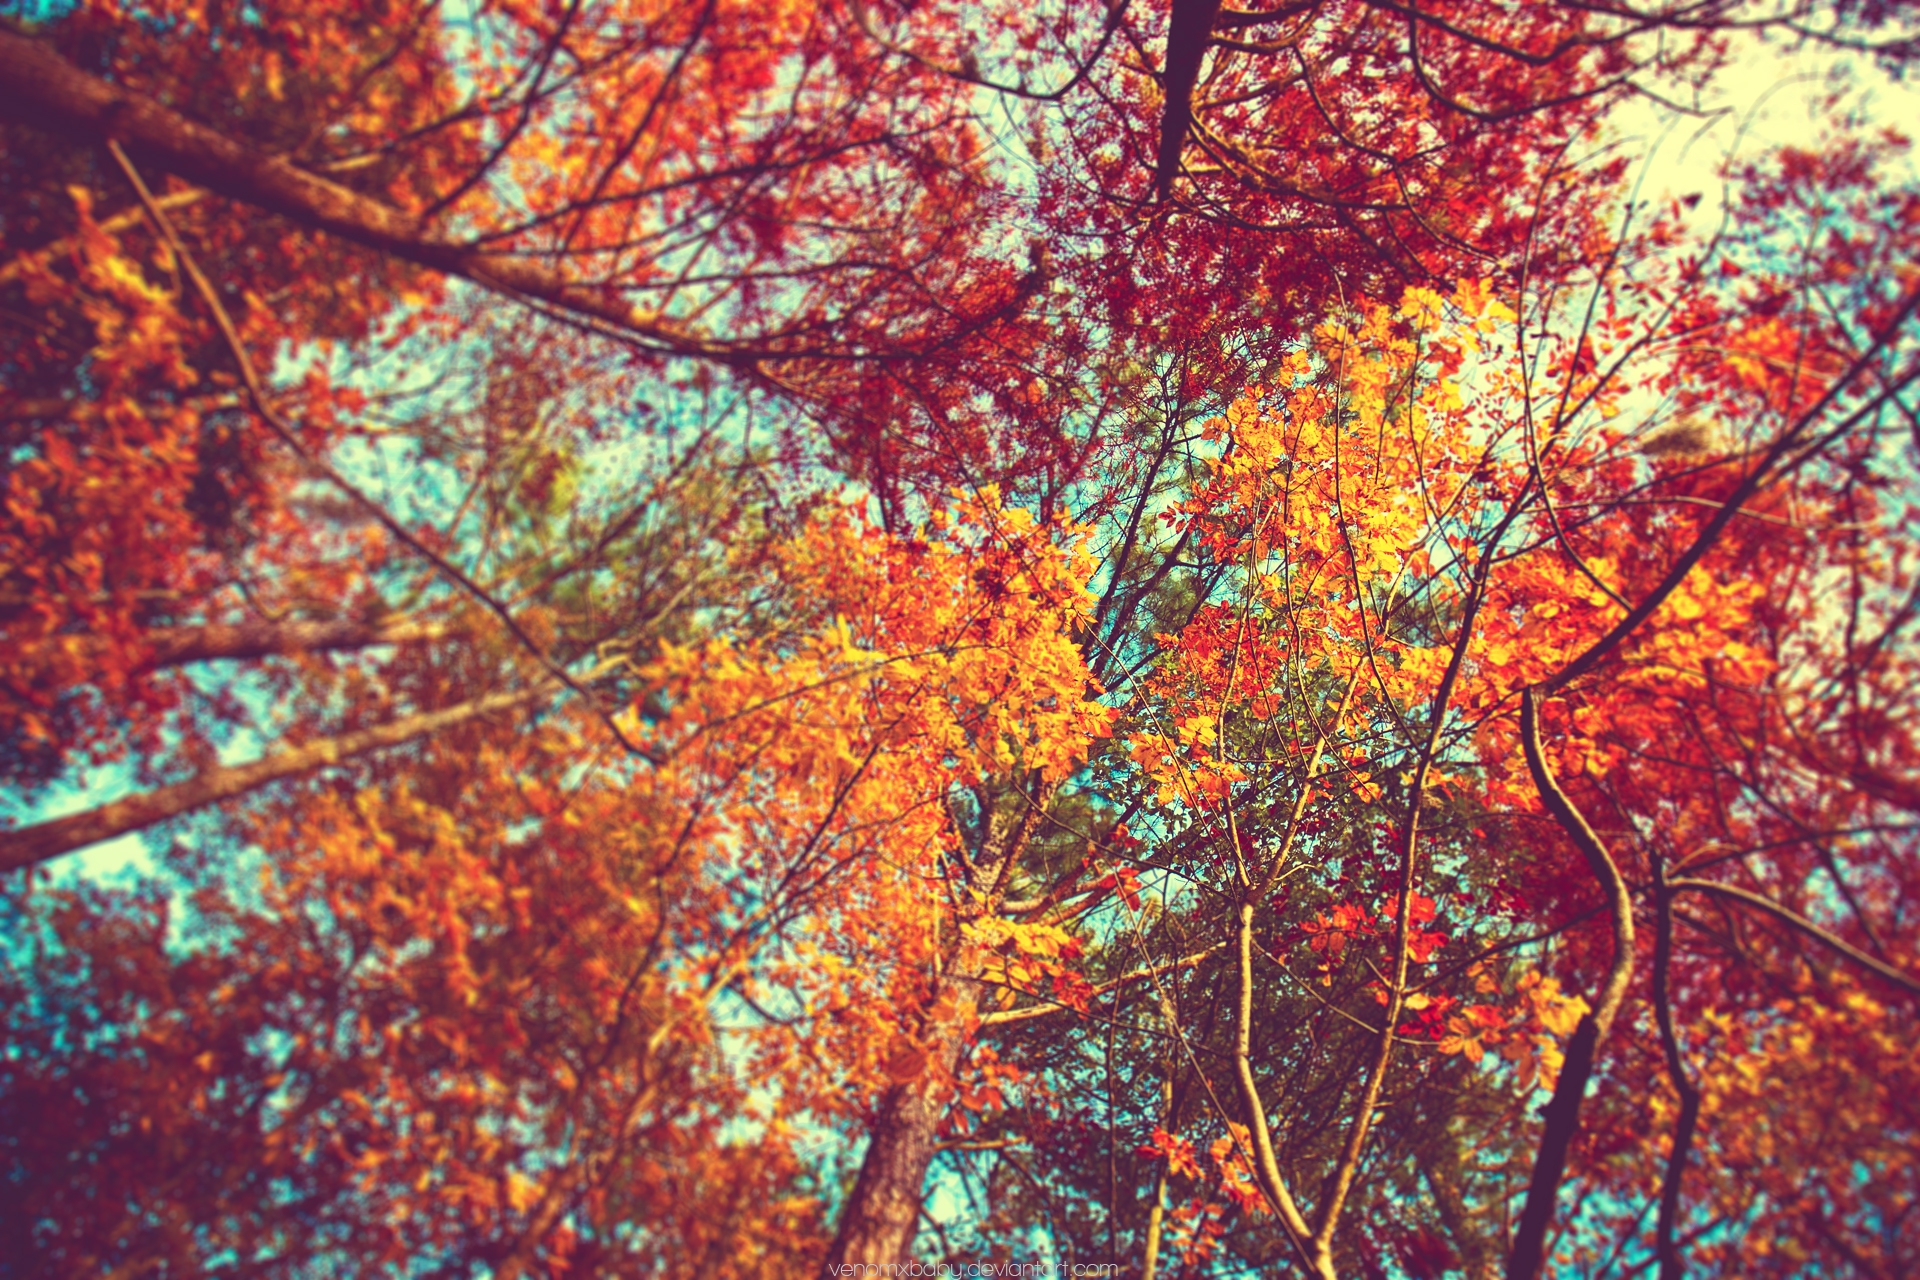 Fall Background Pictures Tumblr   clipartsgramcom 1920x1280